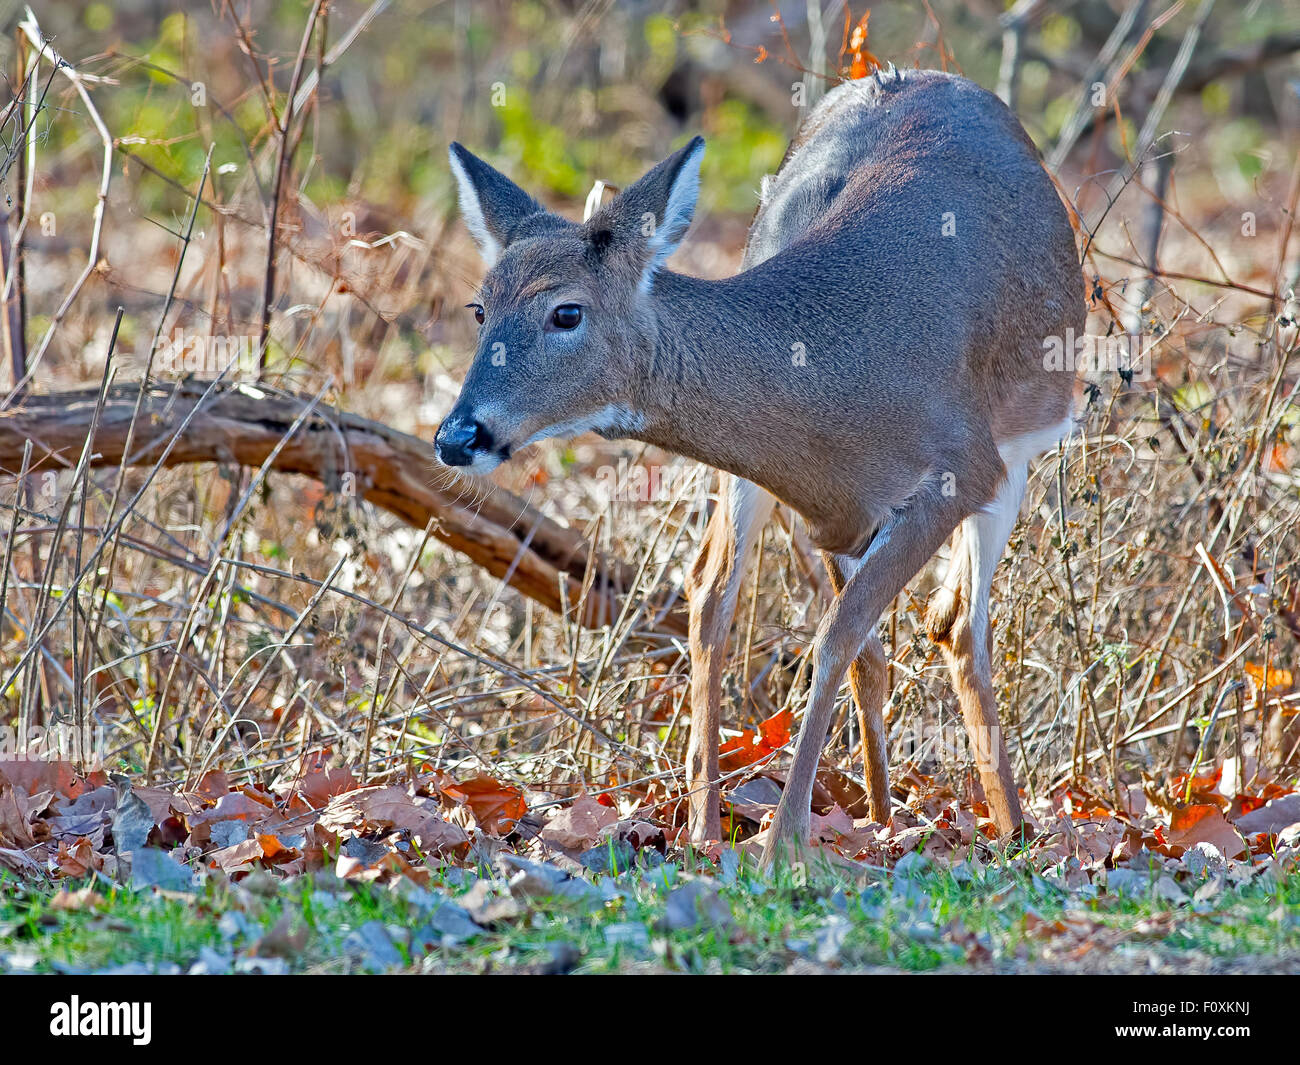 White-tailed Deer in the woods - Stock Image